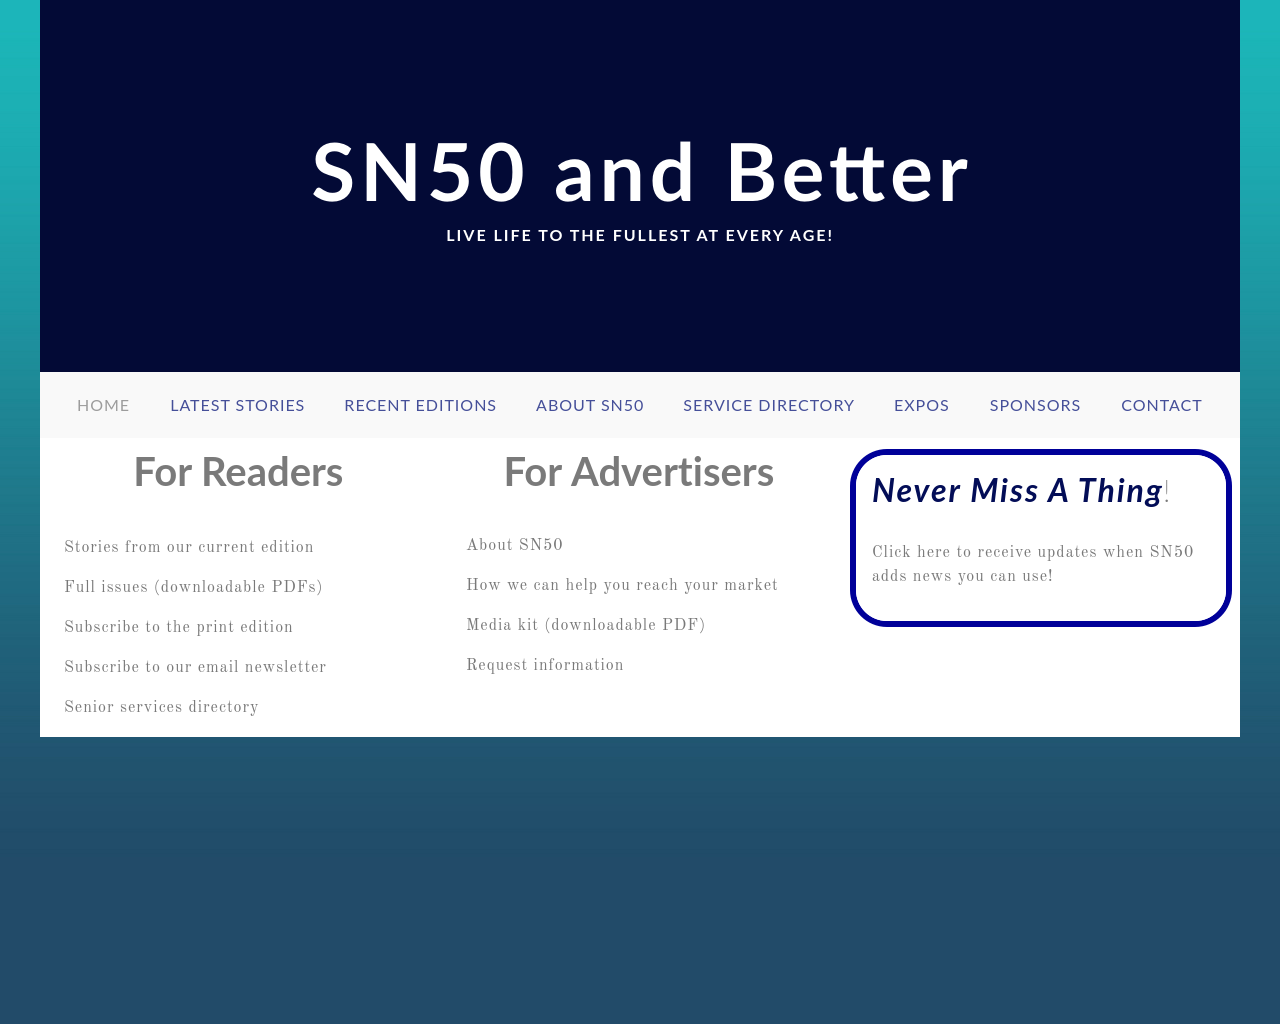 Sn50andbetter.com-Advertising-Reviews-Pricing